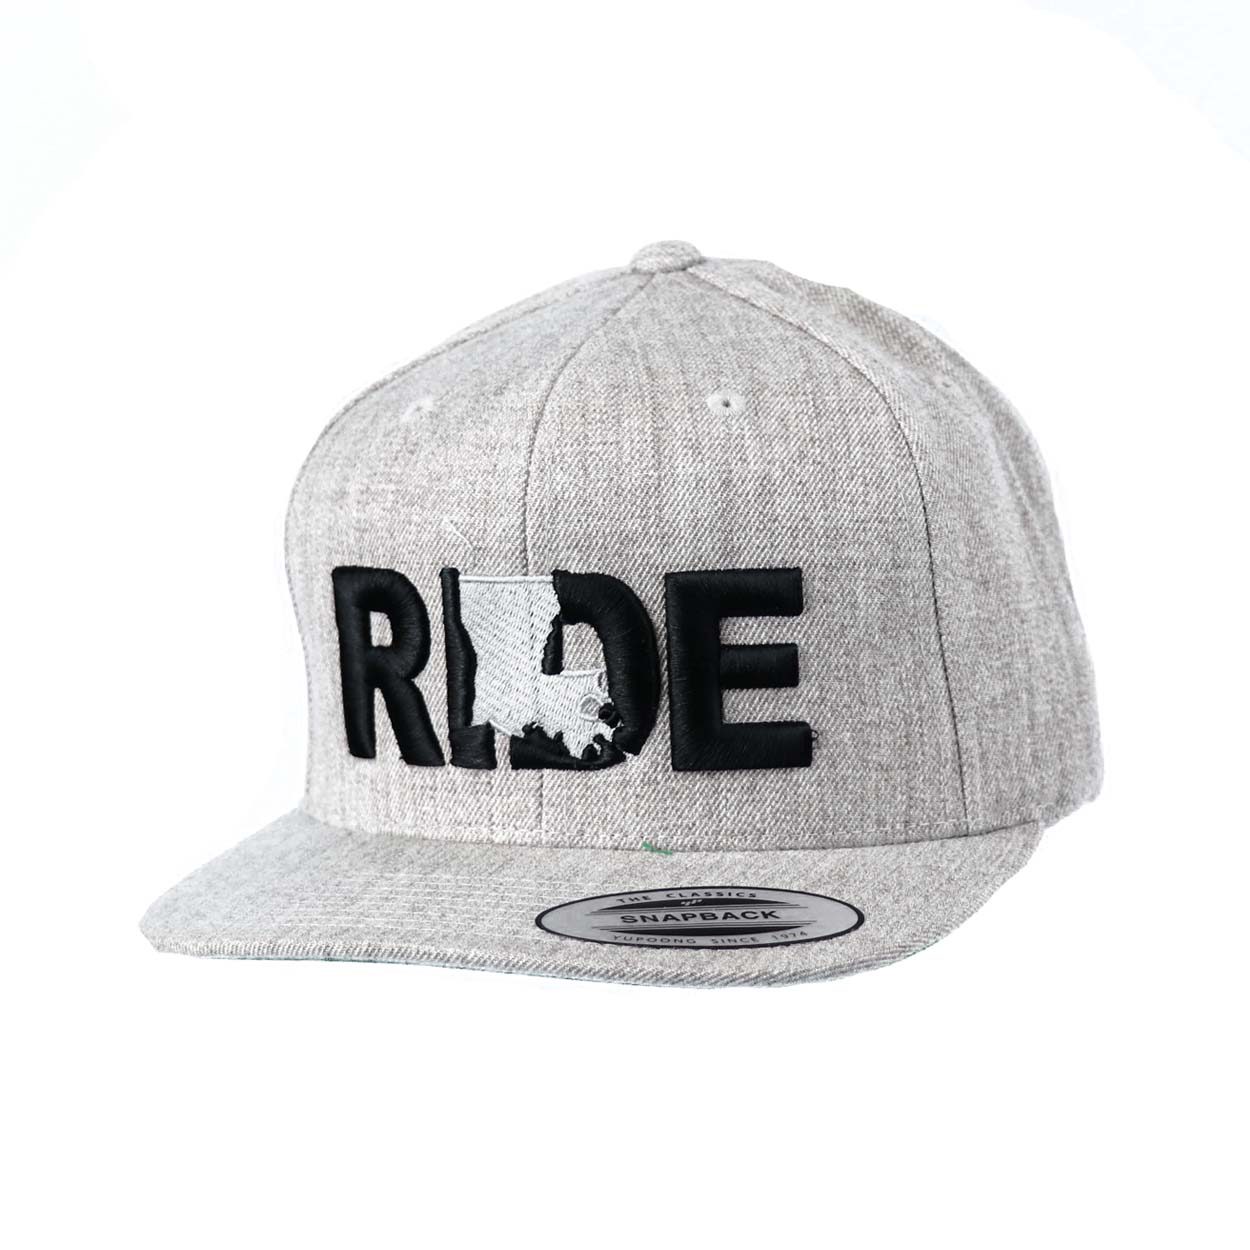 Ride Louisiana Classic Embroidered  Snapback Flat Brim Hat Gray/Black